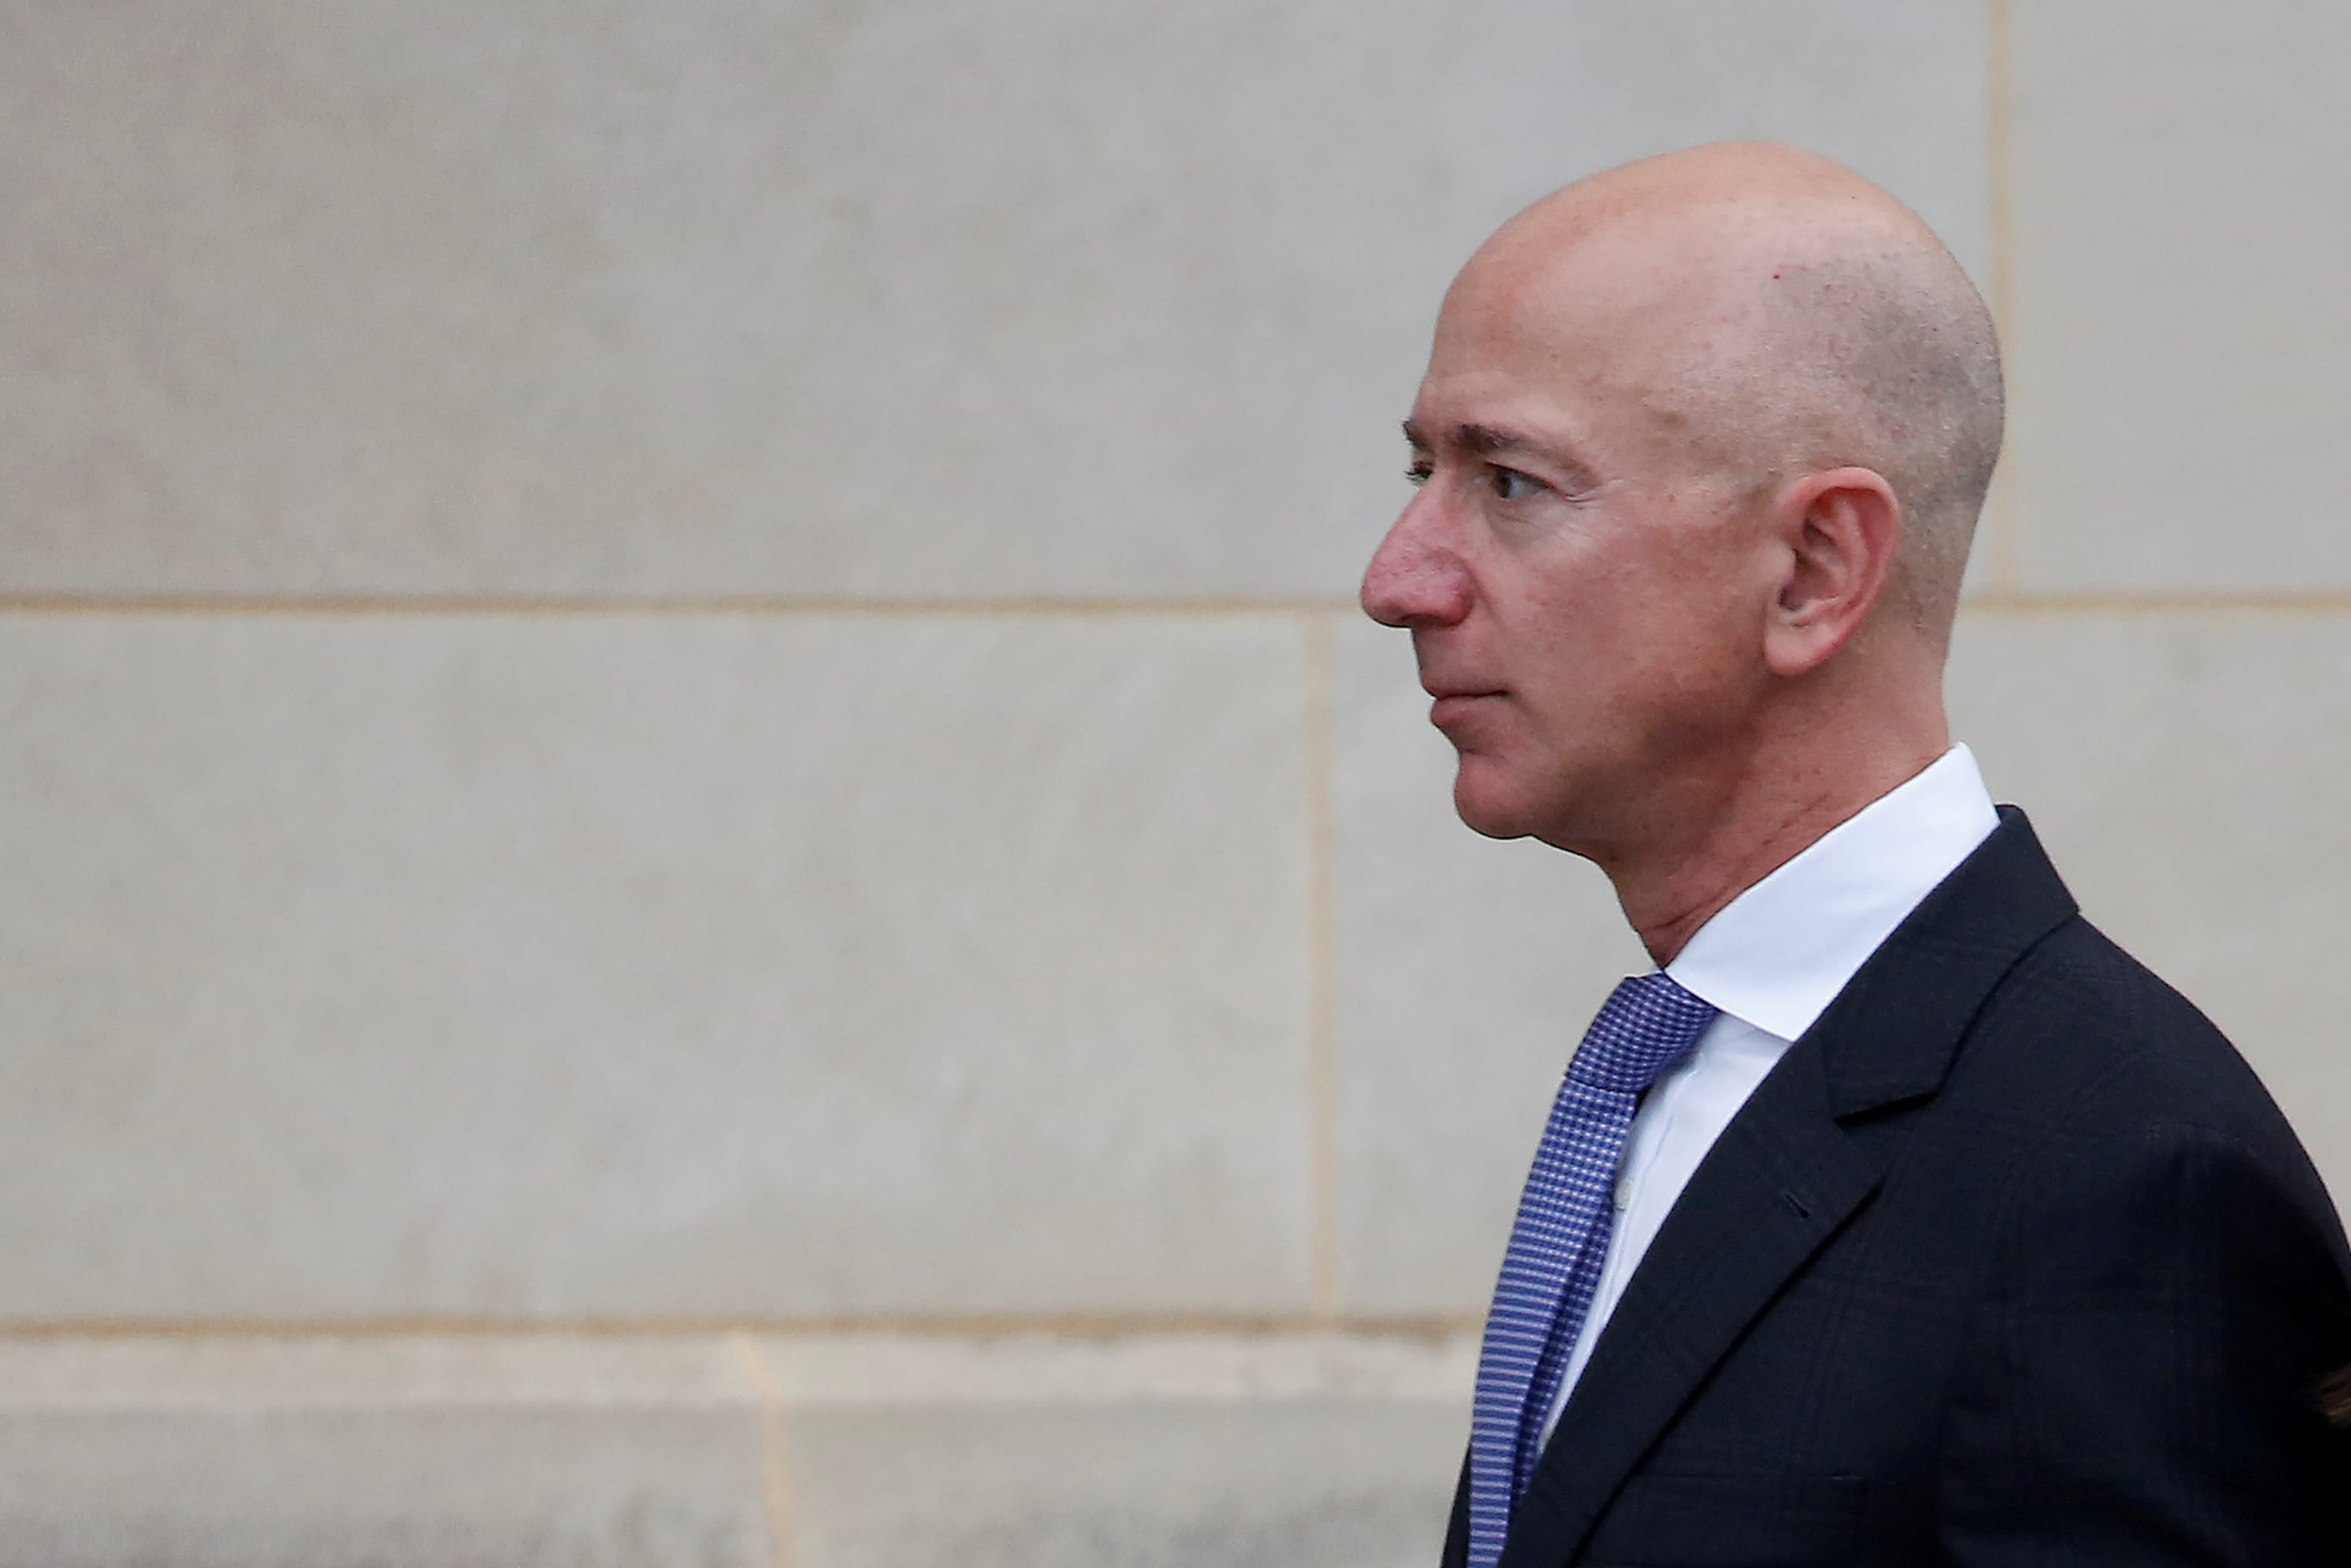 Amazon's Jeff Bezos is spending billions on original content